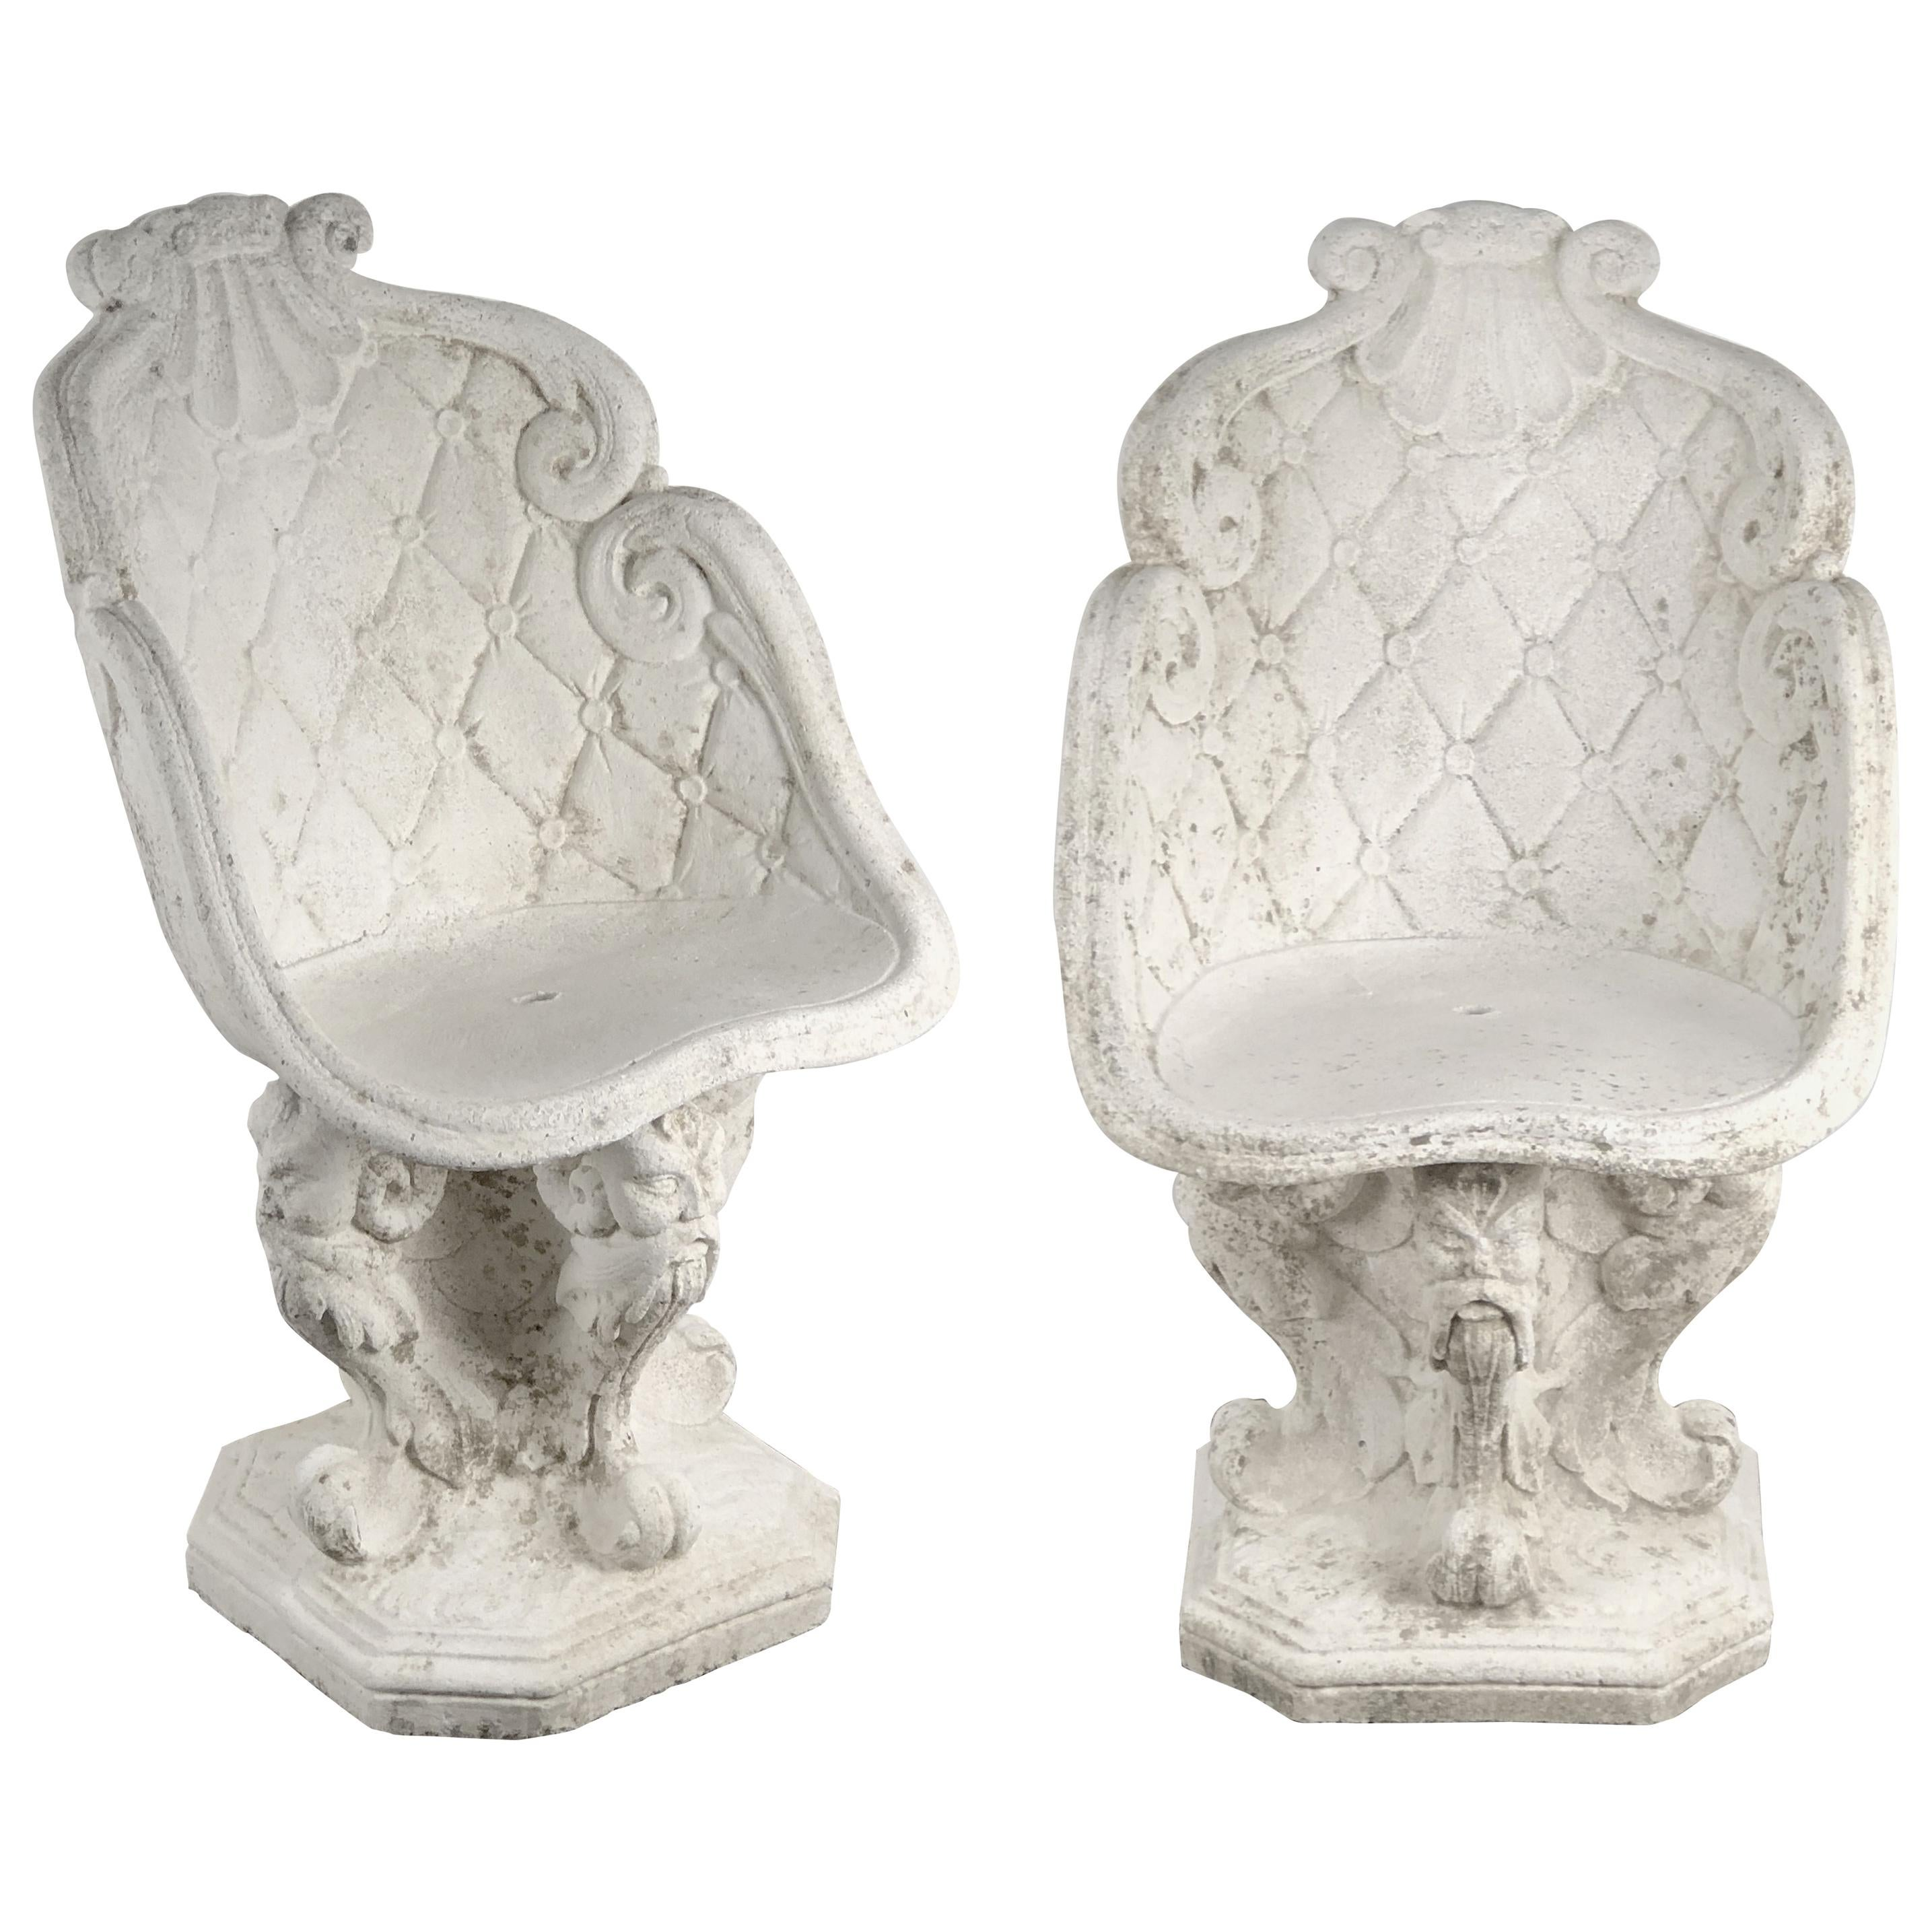 Pair of Large Italian Garden Stone Chairs - Individually Priced